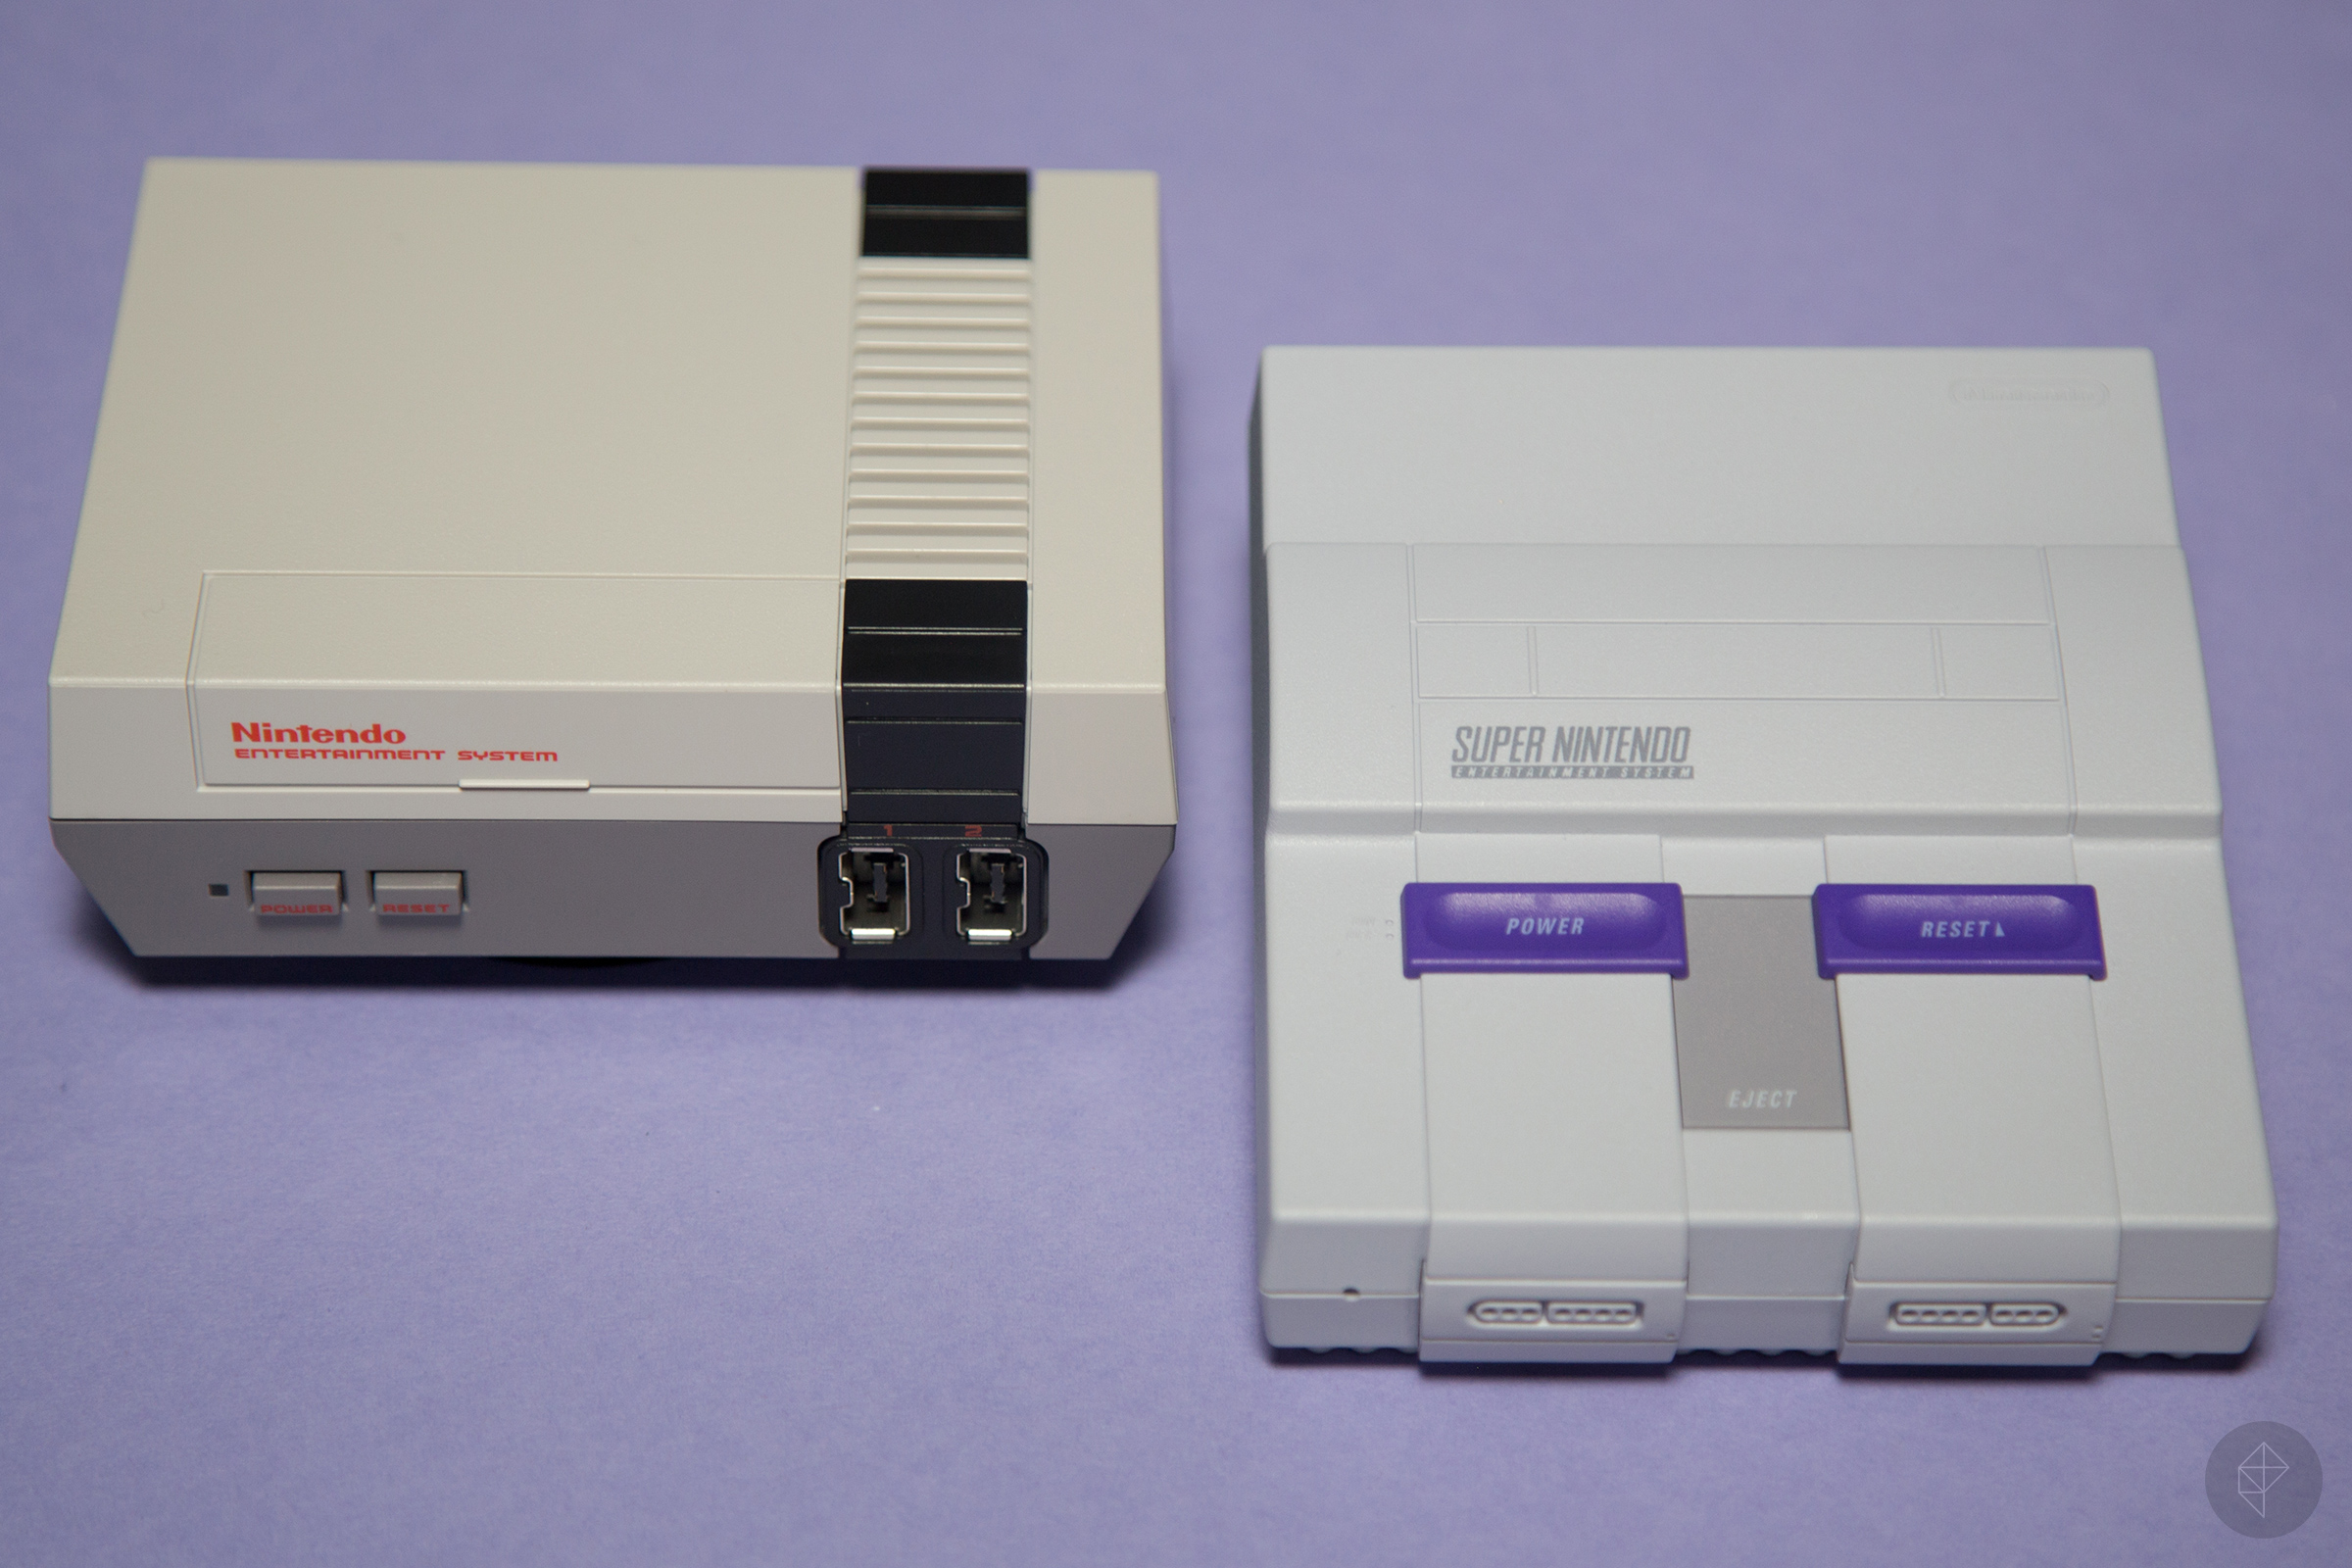 NES Classic, SNES Classic are no longer in production